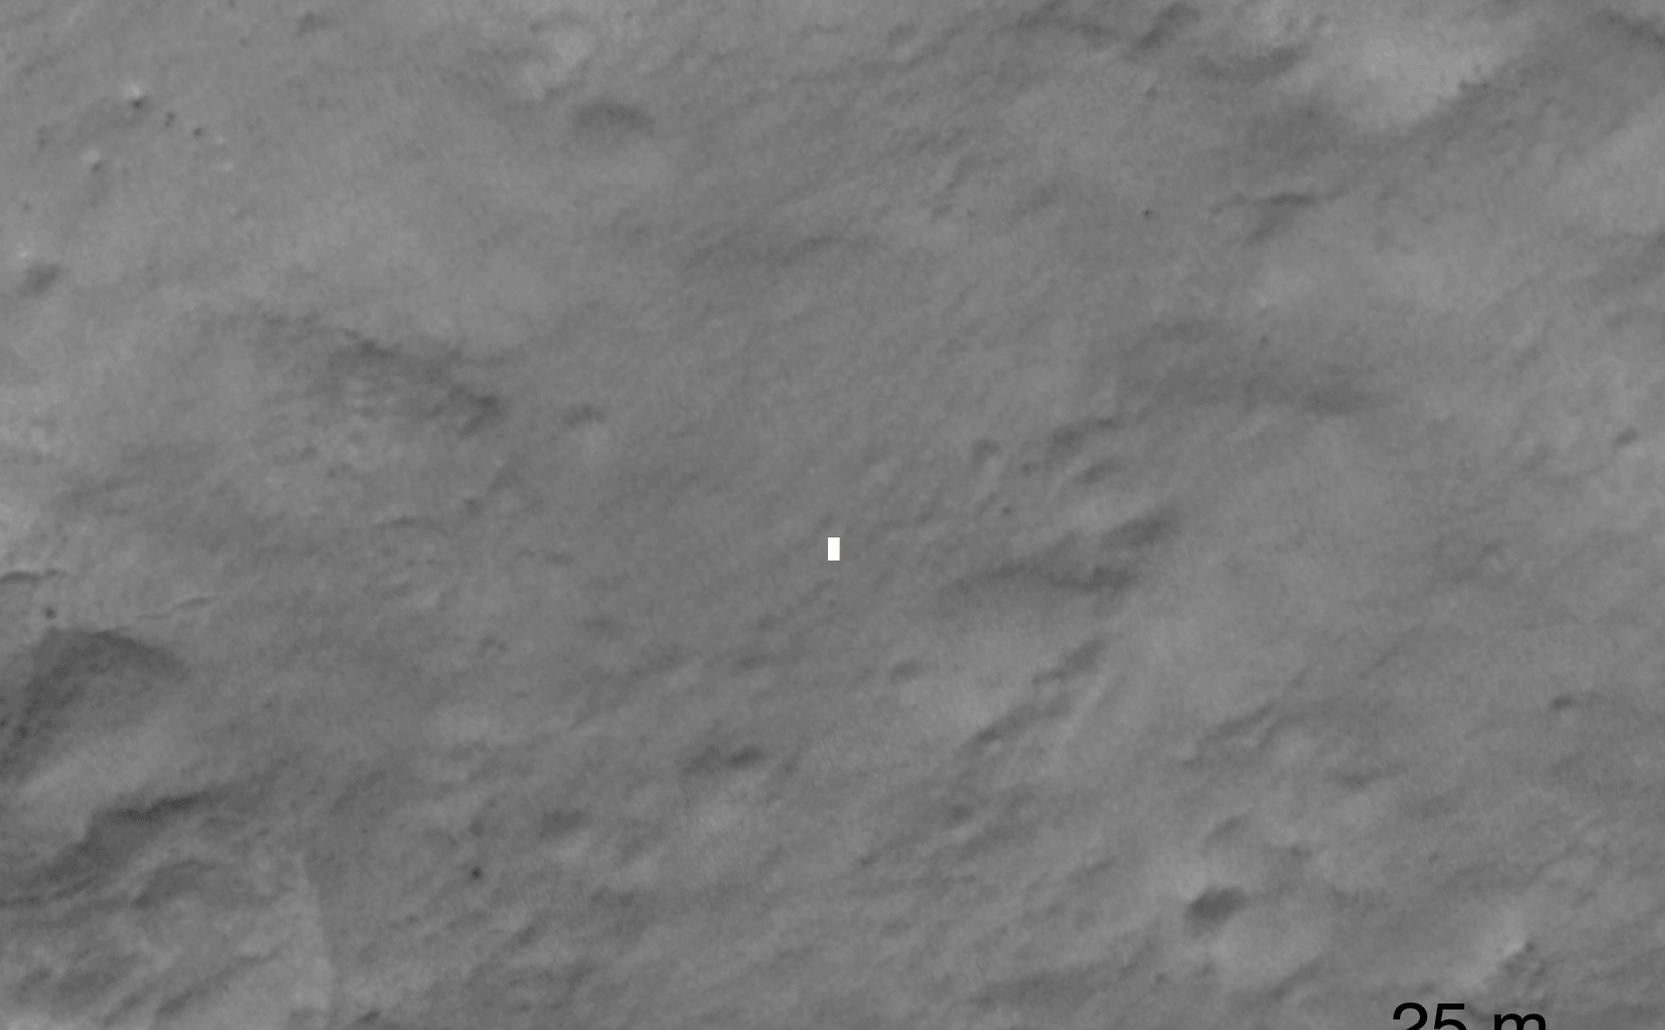 This set of images compares a black-and-white image from the High Resolution Imaging Science Experiment (HiRISE) aboard NASA's Mars Reconnaissance Orbiter to a color image obtained by the Mars Descent Imager aboard NASA's Curiosity rover during its descent to the surface.